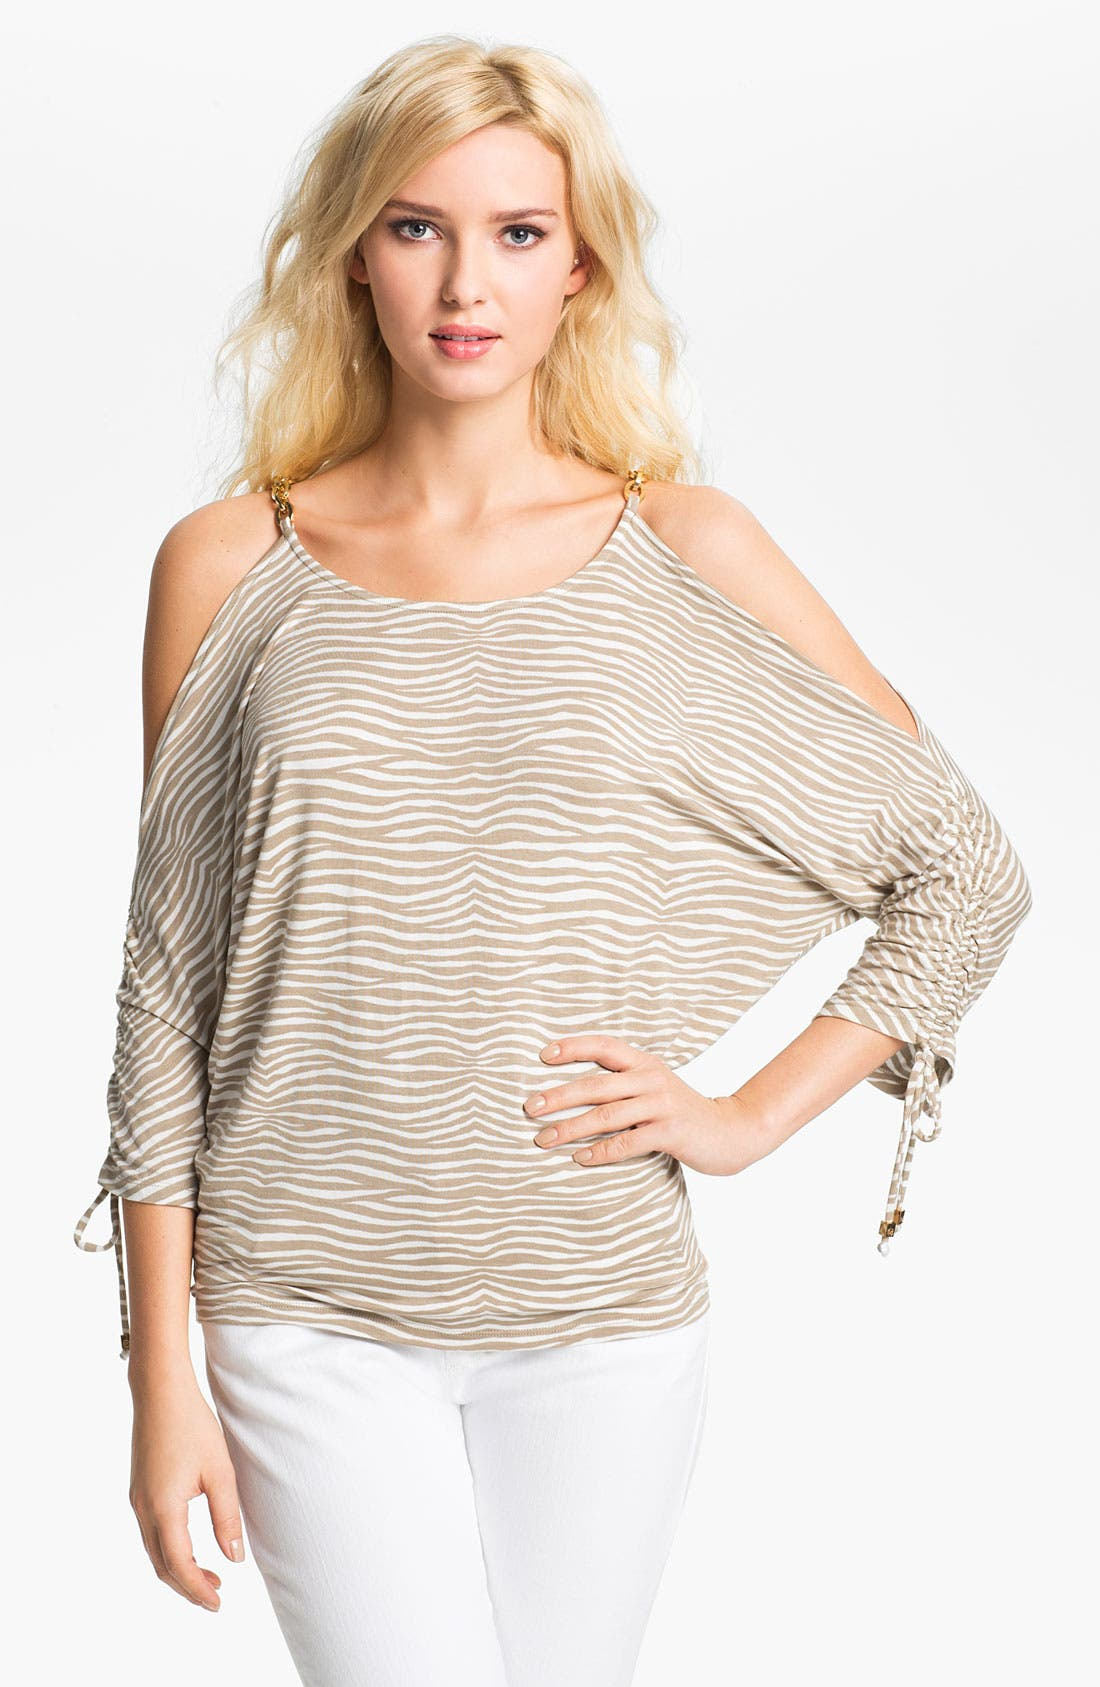 Alternate Image 1 Selected - MICHAEL Michael Kors Zebra Print Cold Shoulder Top